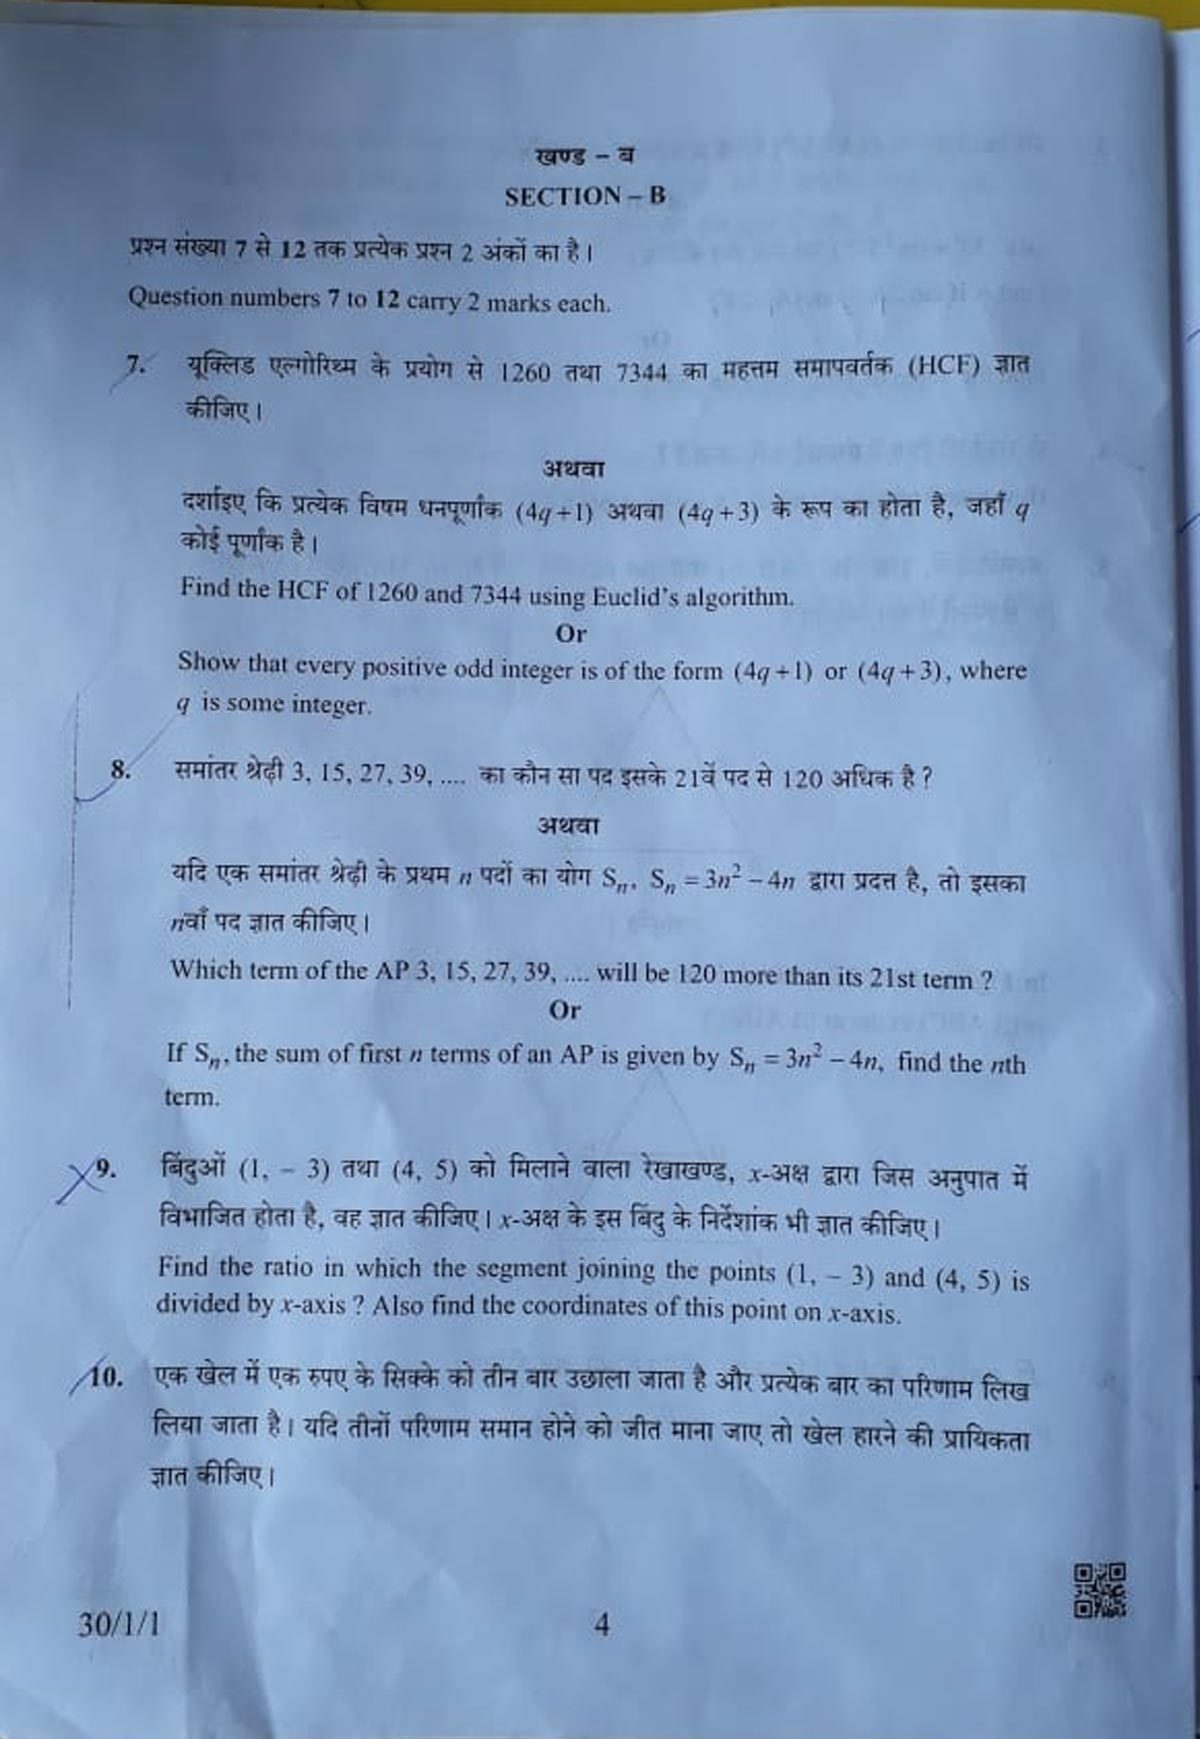 CBSE 10th Maths question paper 2019 - Times of India